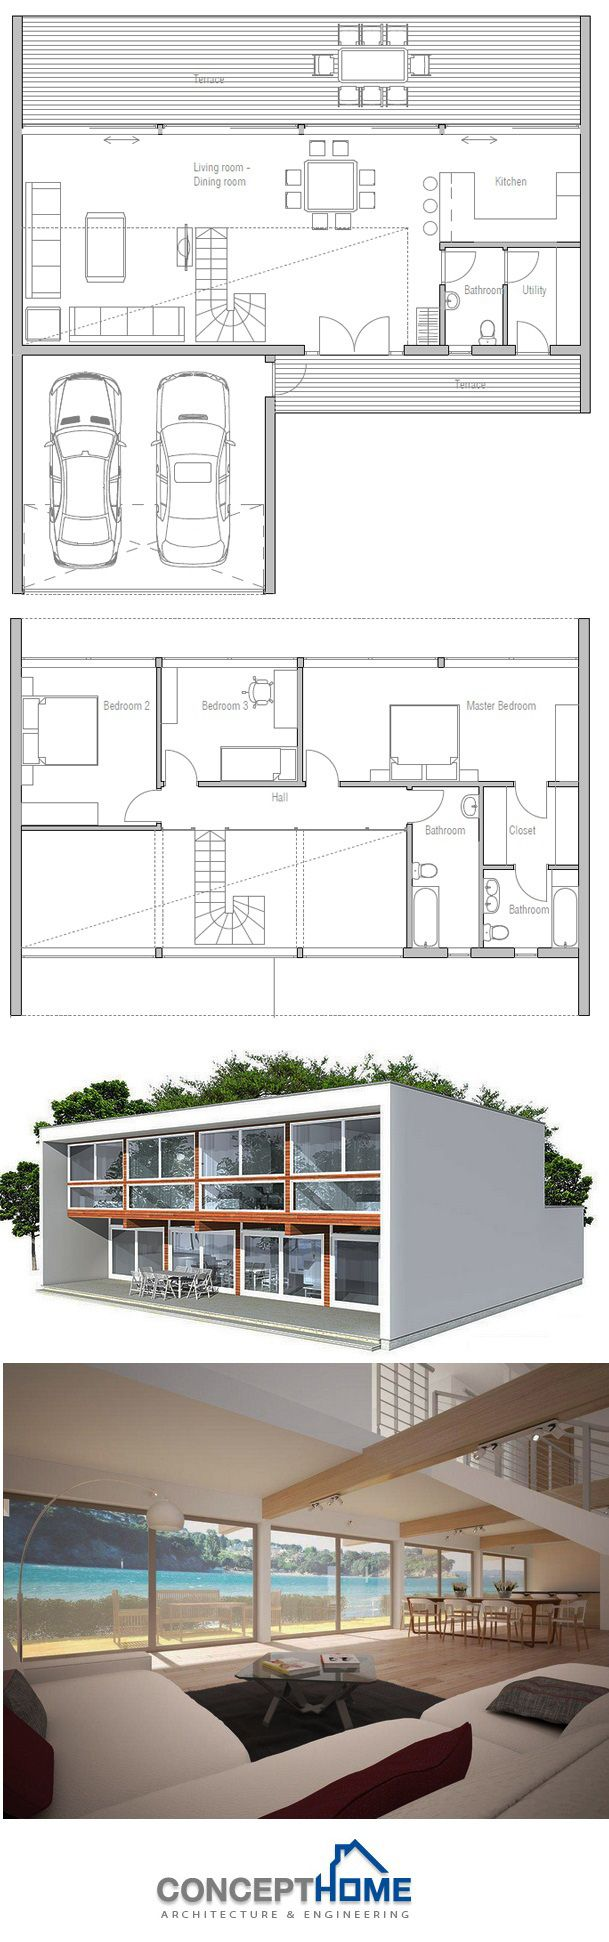 170 best images on pinterest architecture architecture drawing of a house floor plan